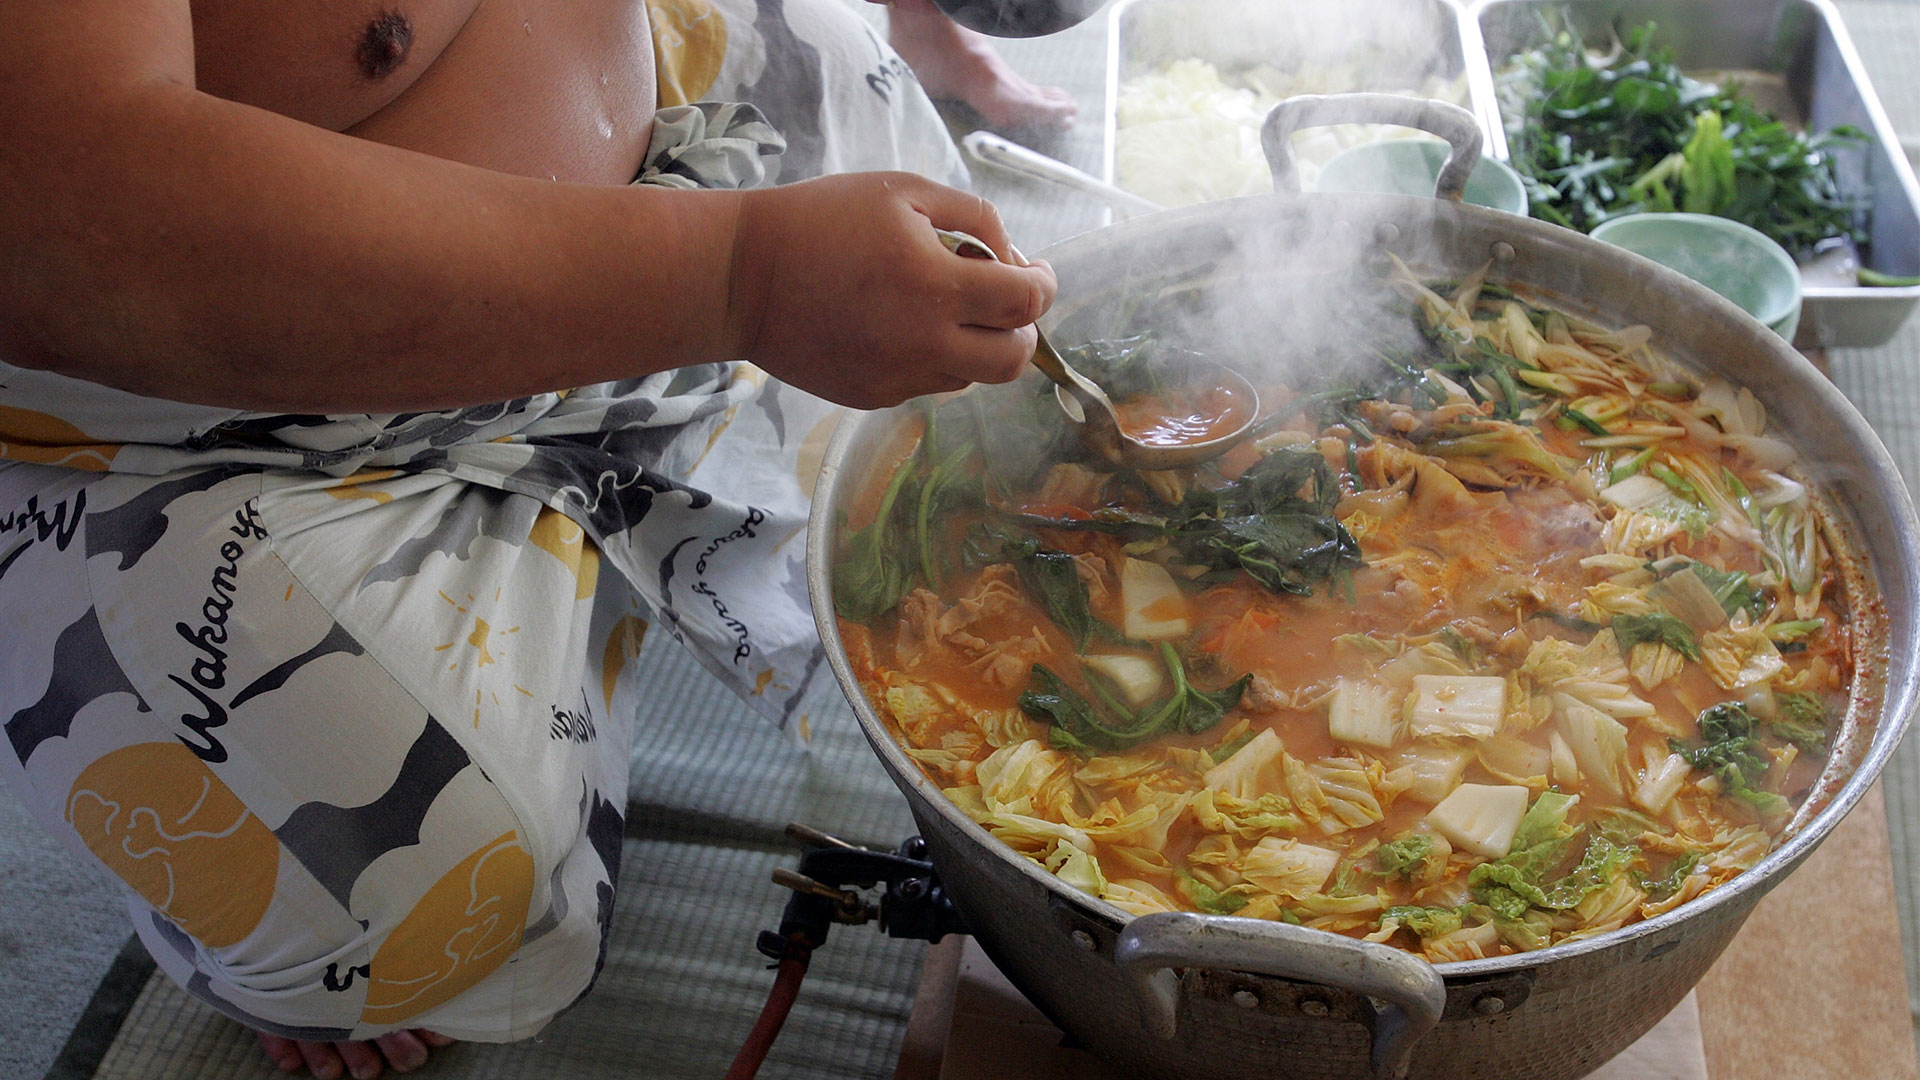 How to Make Your Own Chanko-Nabe (Sumo Stew)